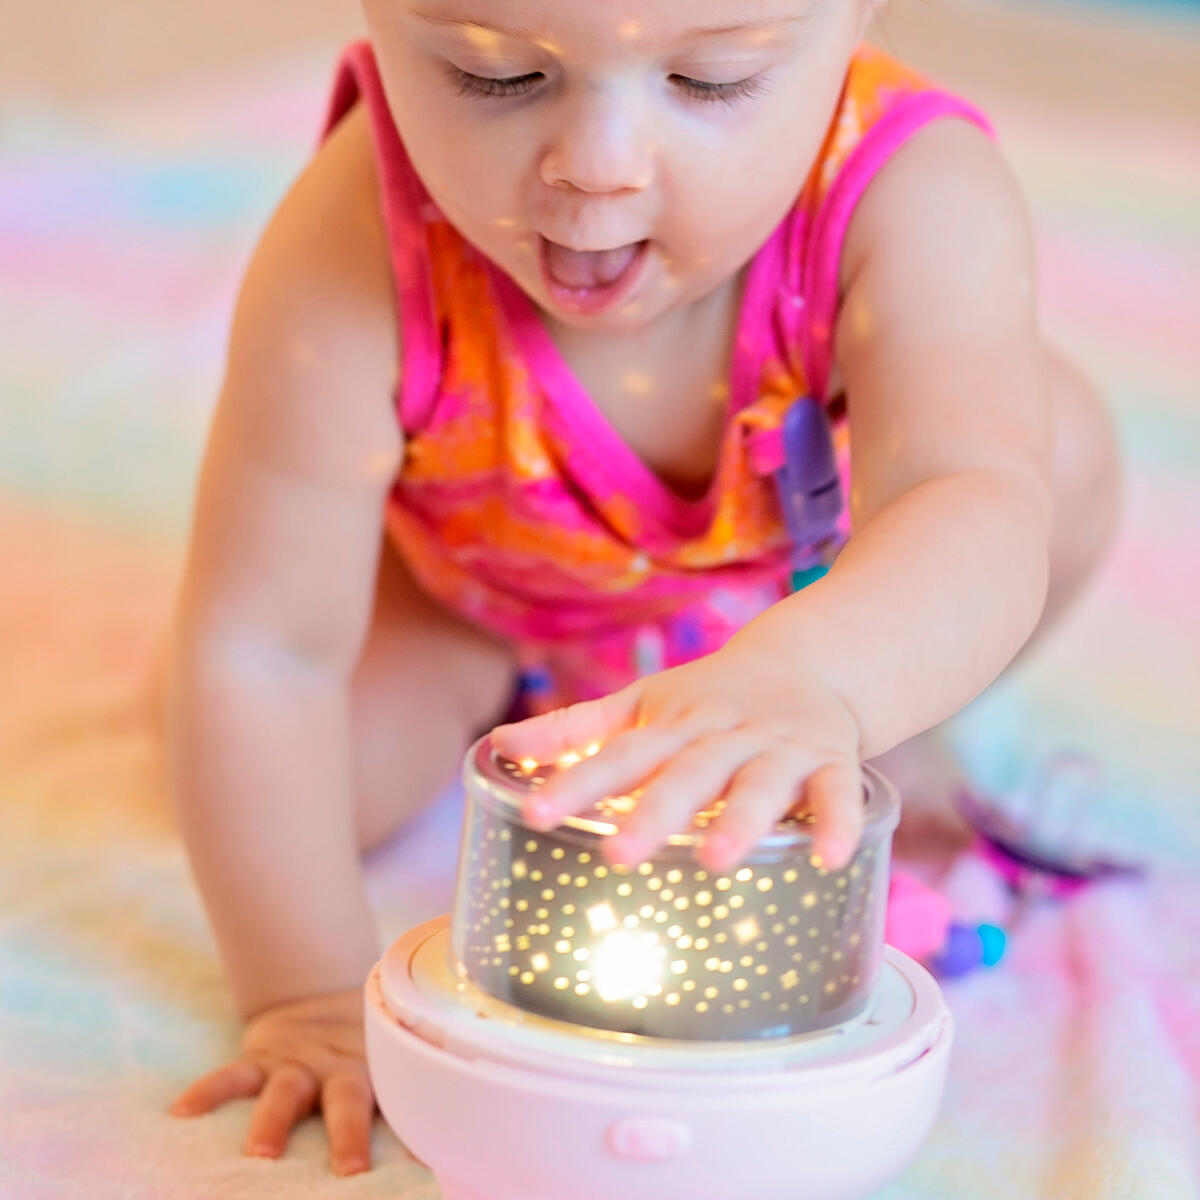 Ambient Light, Projector or Bluetooth Speaker for Kids 3 in 1 - Great Gift - Kids Night Light Projector for Bedroom with Remote Control - Bluetooth Music Speaker with Timer - Rotating Kids Lamp with 6 Films and USB - Pink